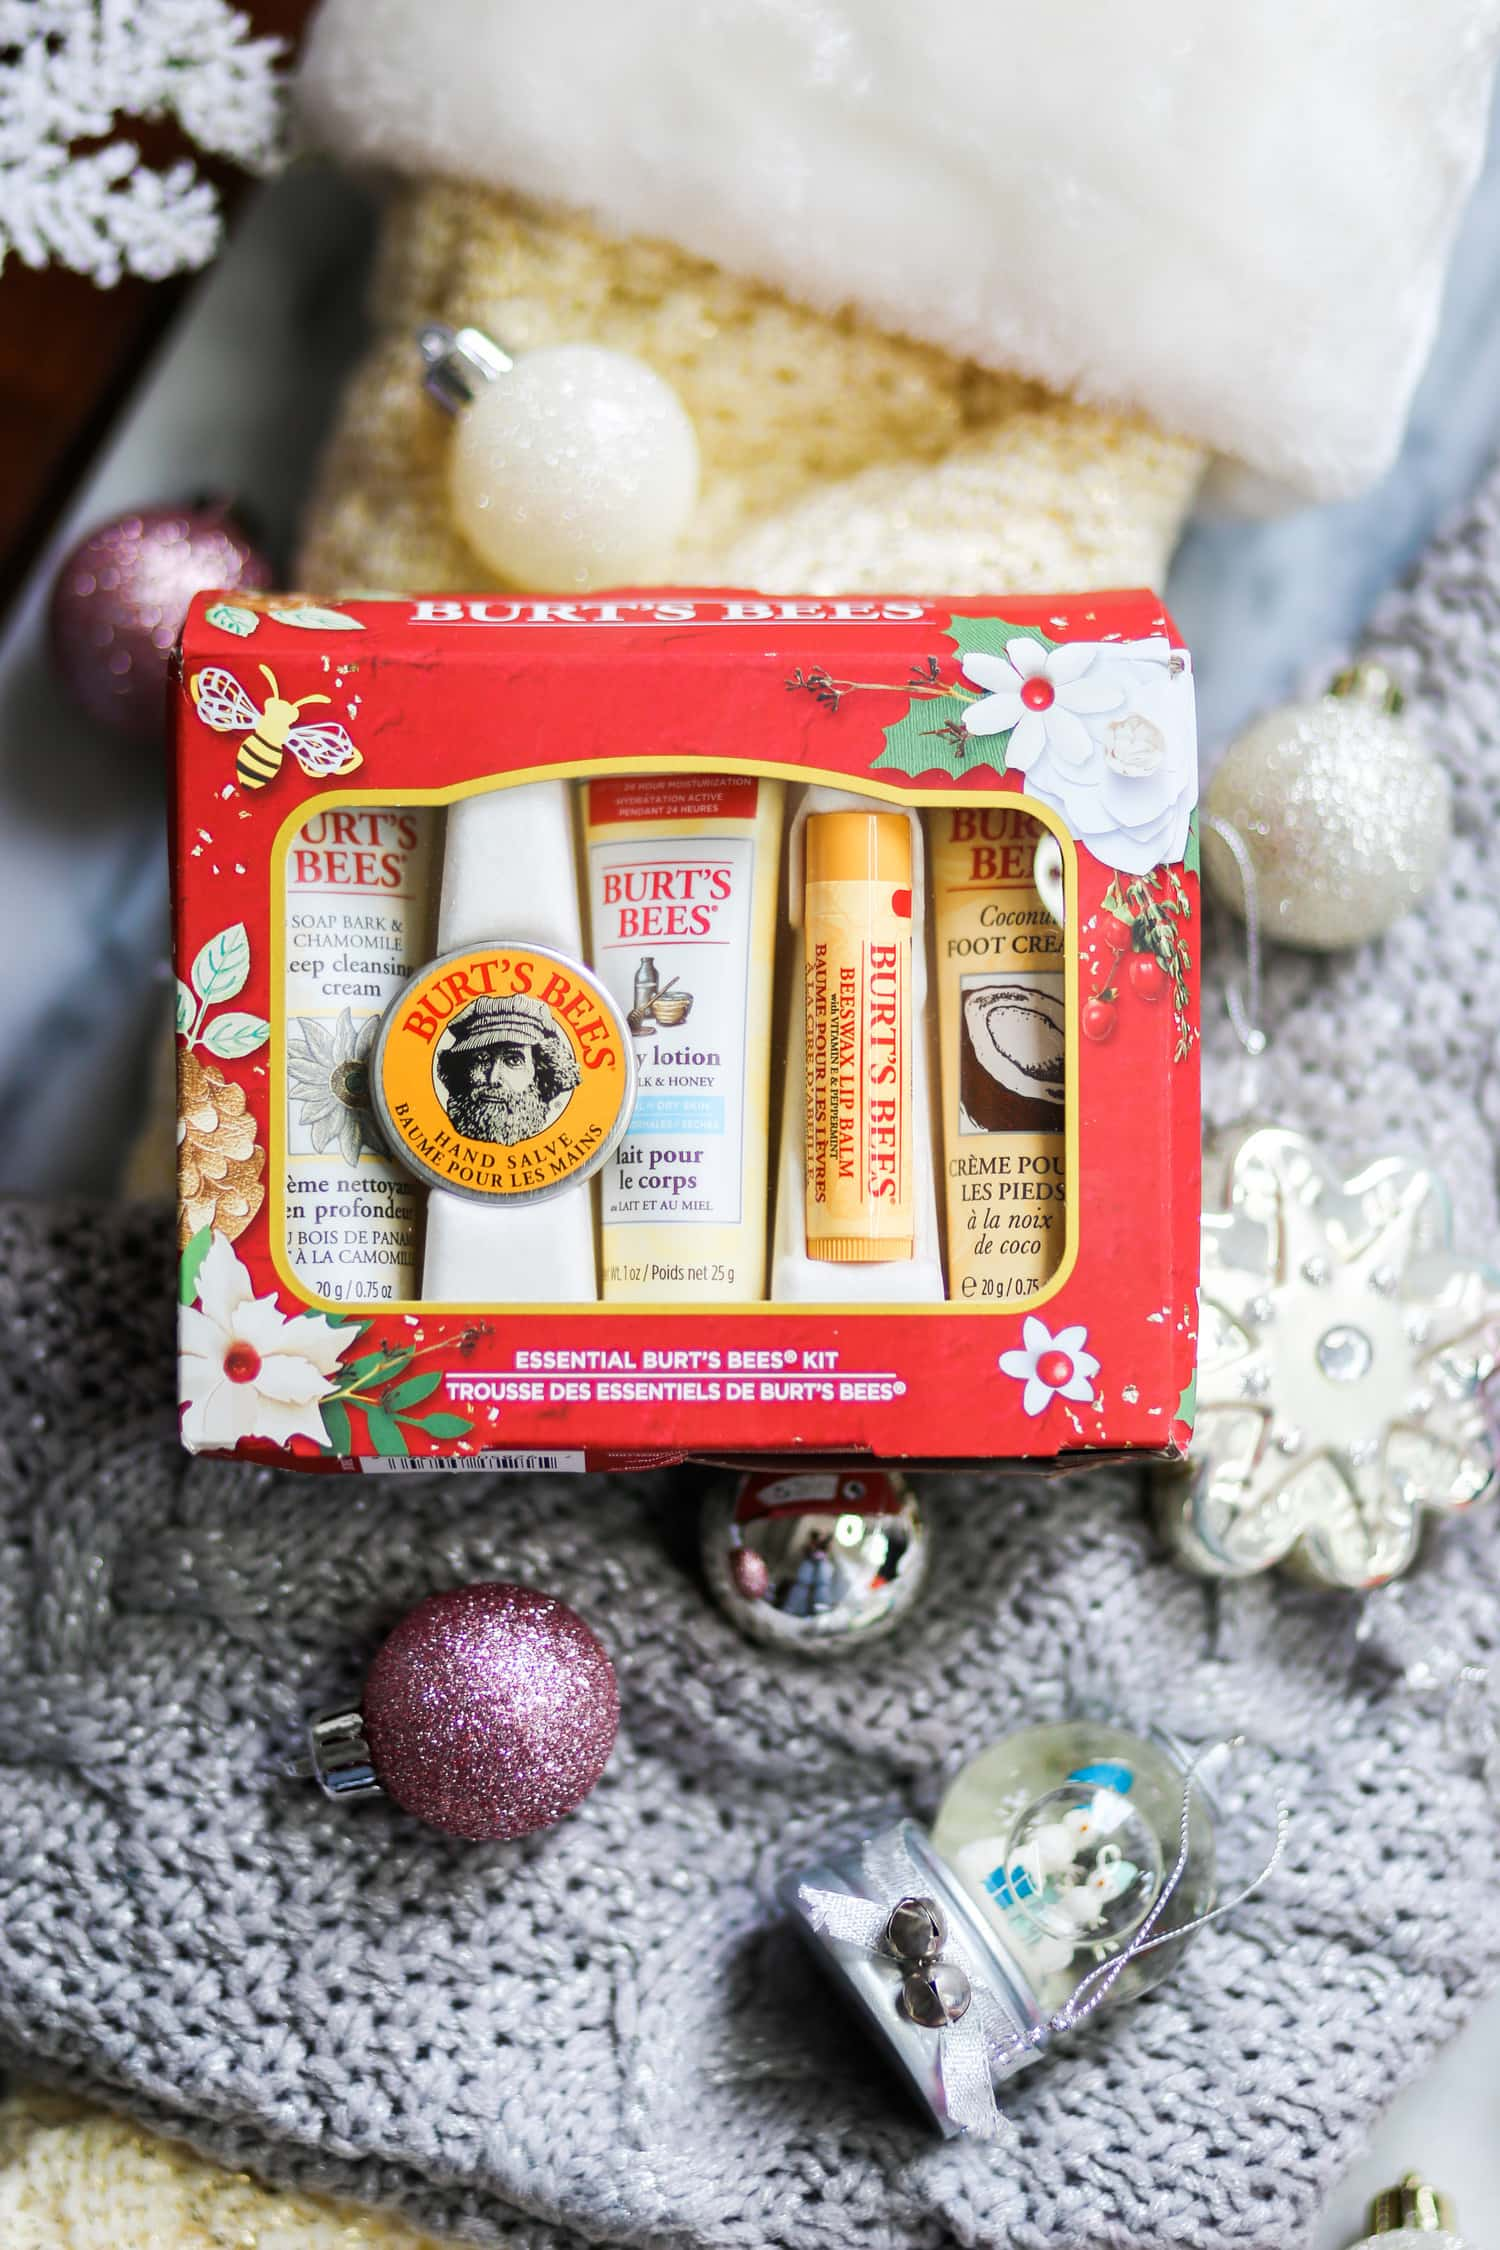 My Go-To Burt\'s Bees Christmas Gifts Under $10 | Ashley Brooke Nicholas